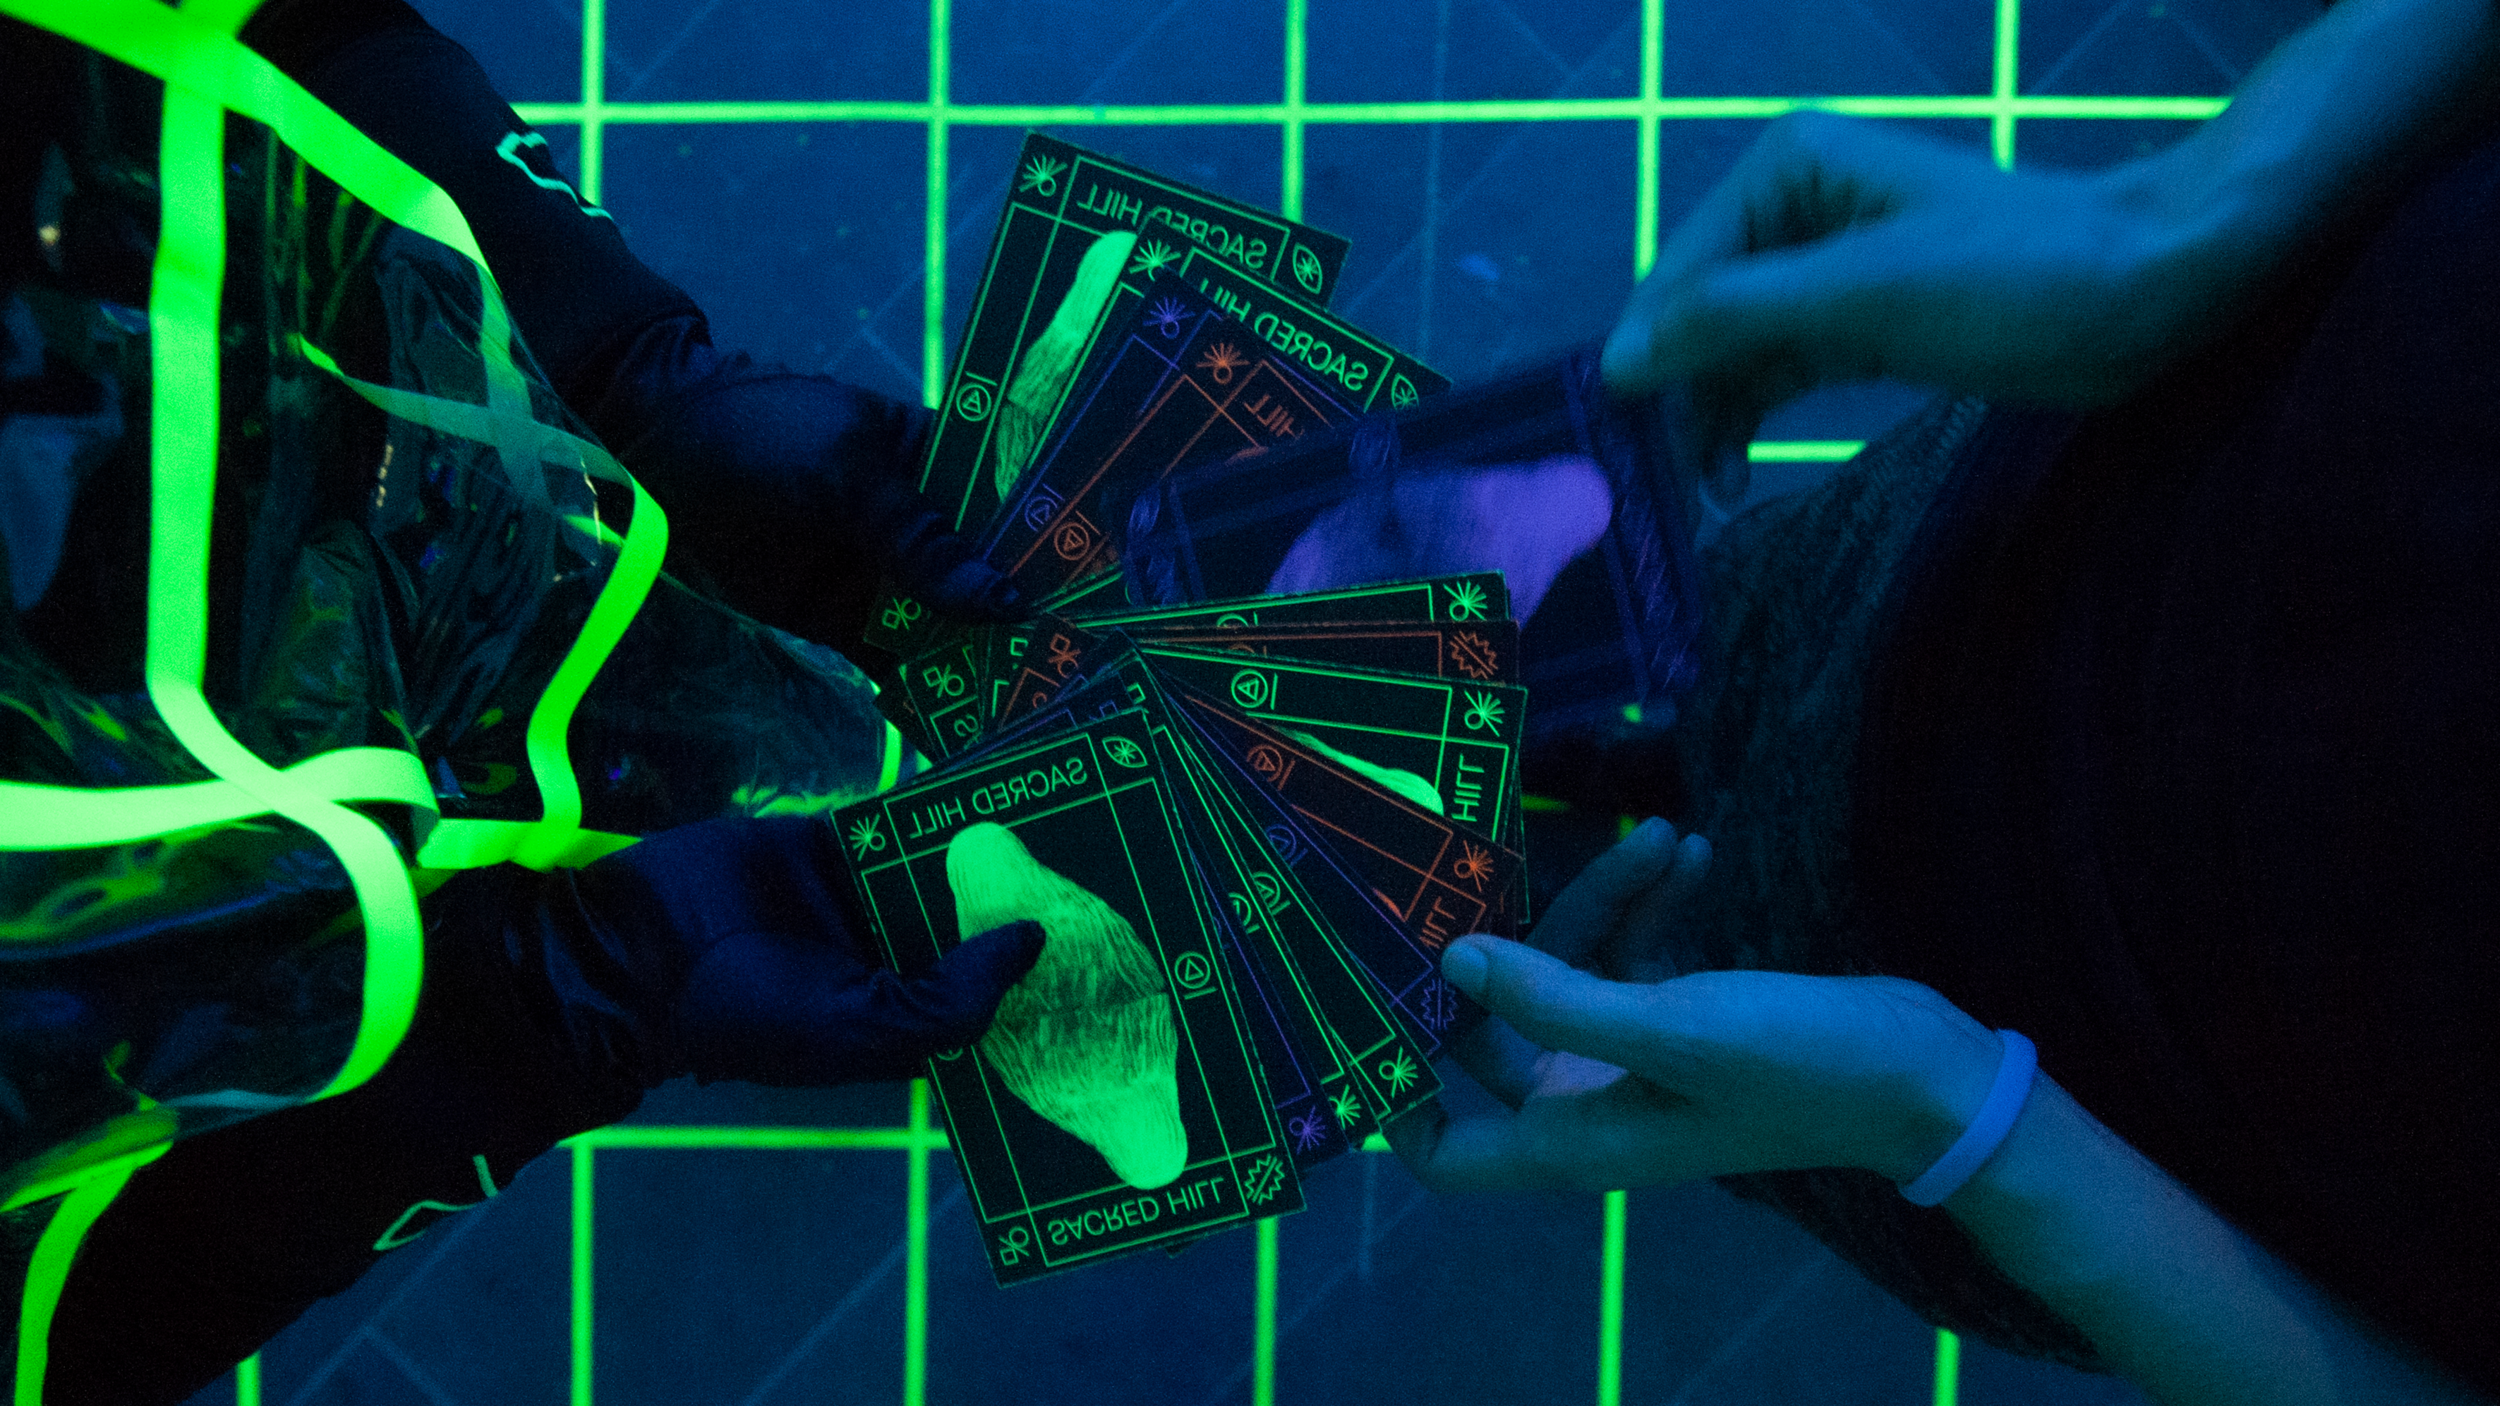 THE GATHERING - A multi-sensory performance connects the physical space with the virtual space and prepares for the ritual through a card reading.The personal story and meaning of each card reflects on the ritual machine and gives you an extra power to join you on your VR journey.